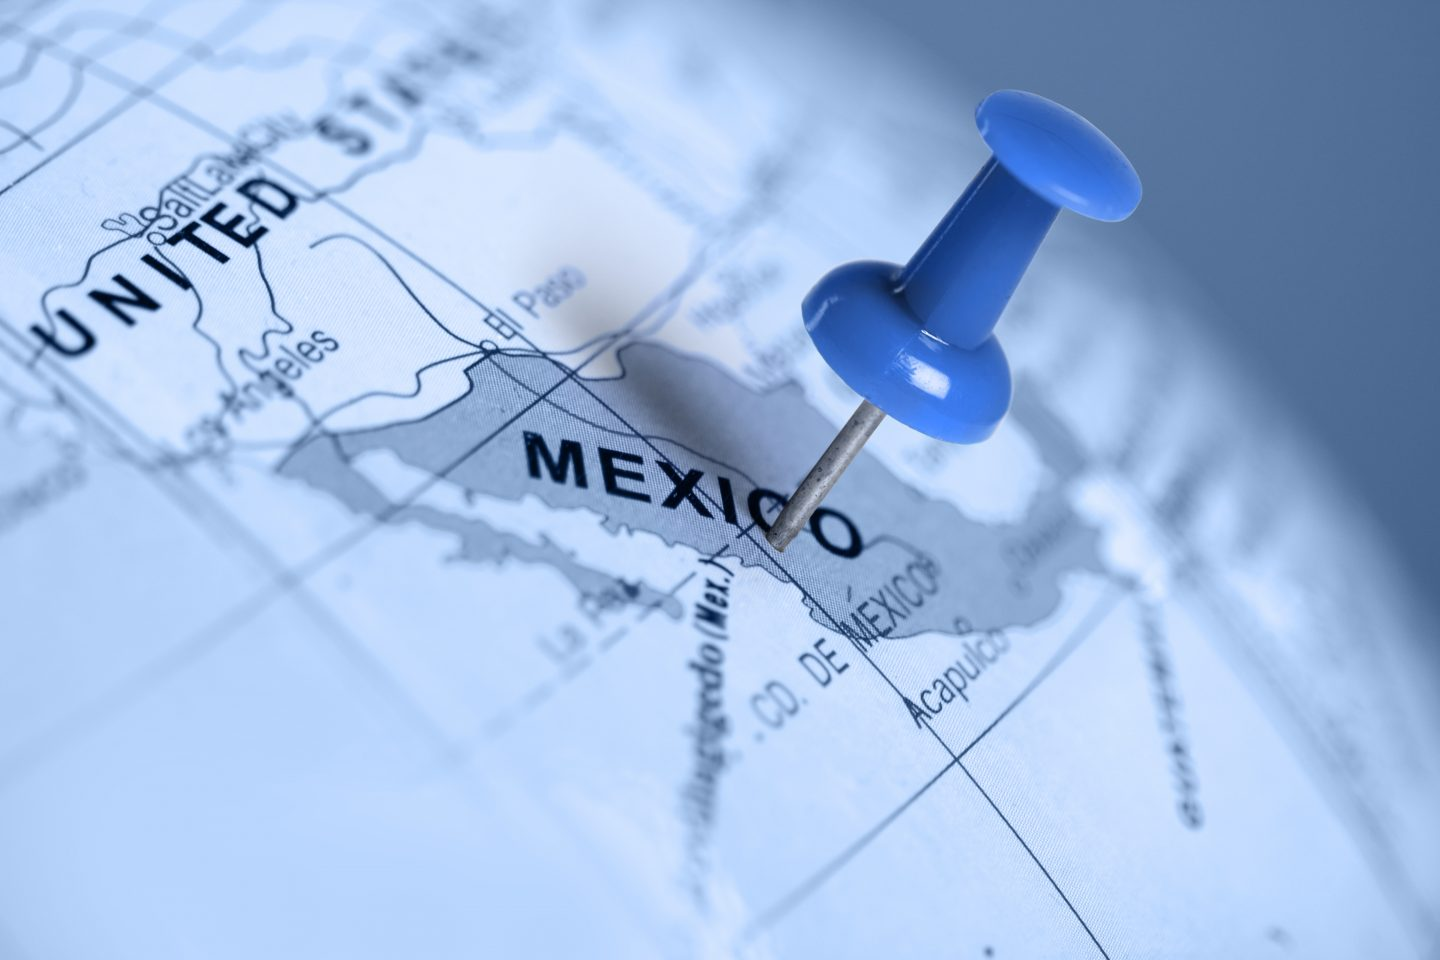 5 Things To Consider When Planning A Mexican Holiday